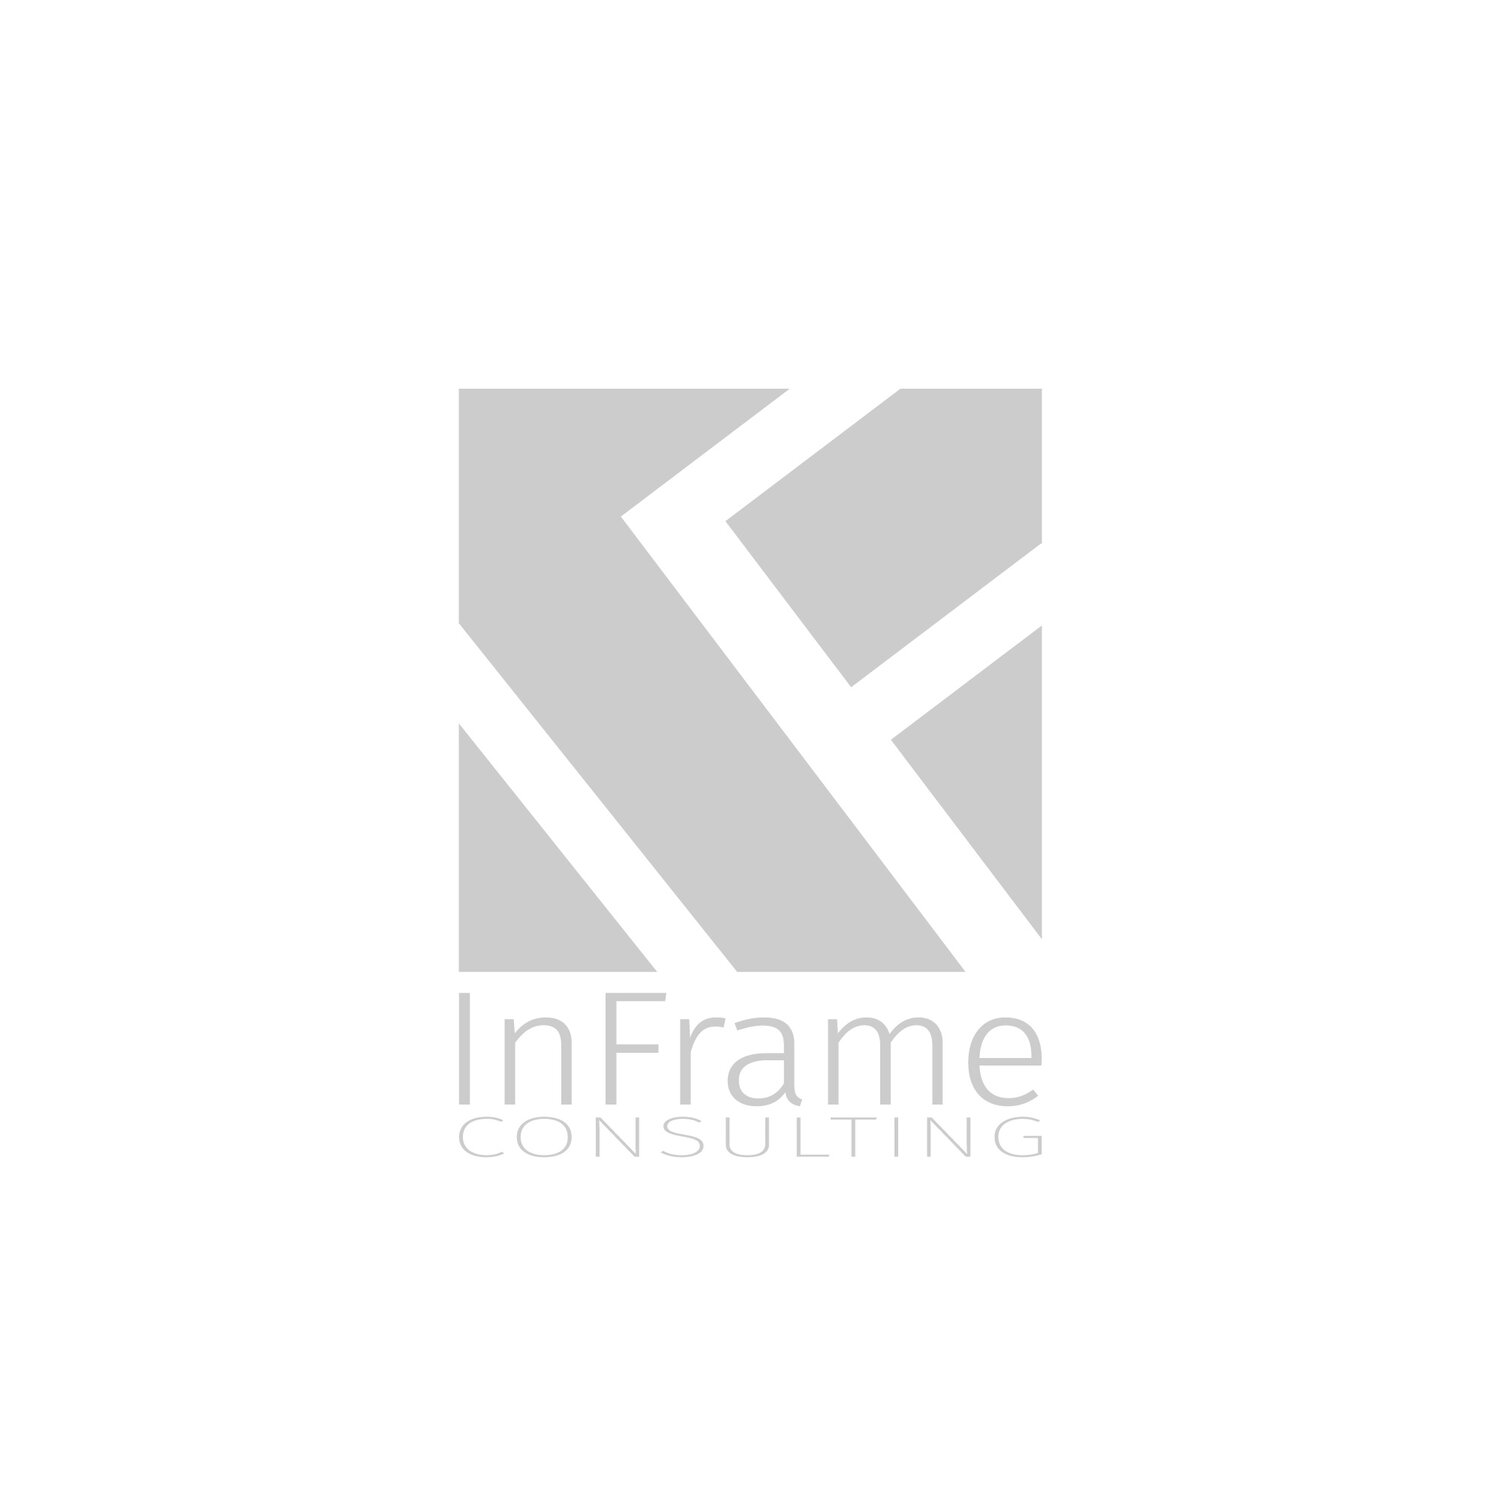 Inframe Consulting